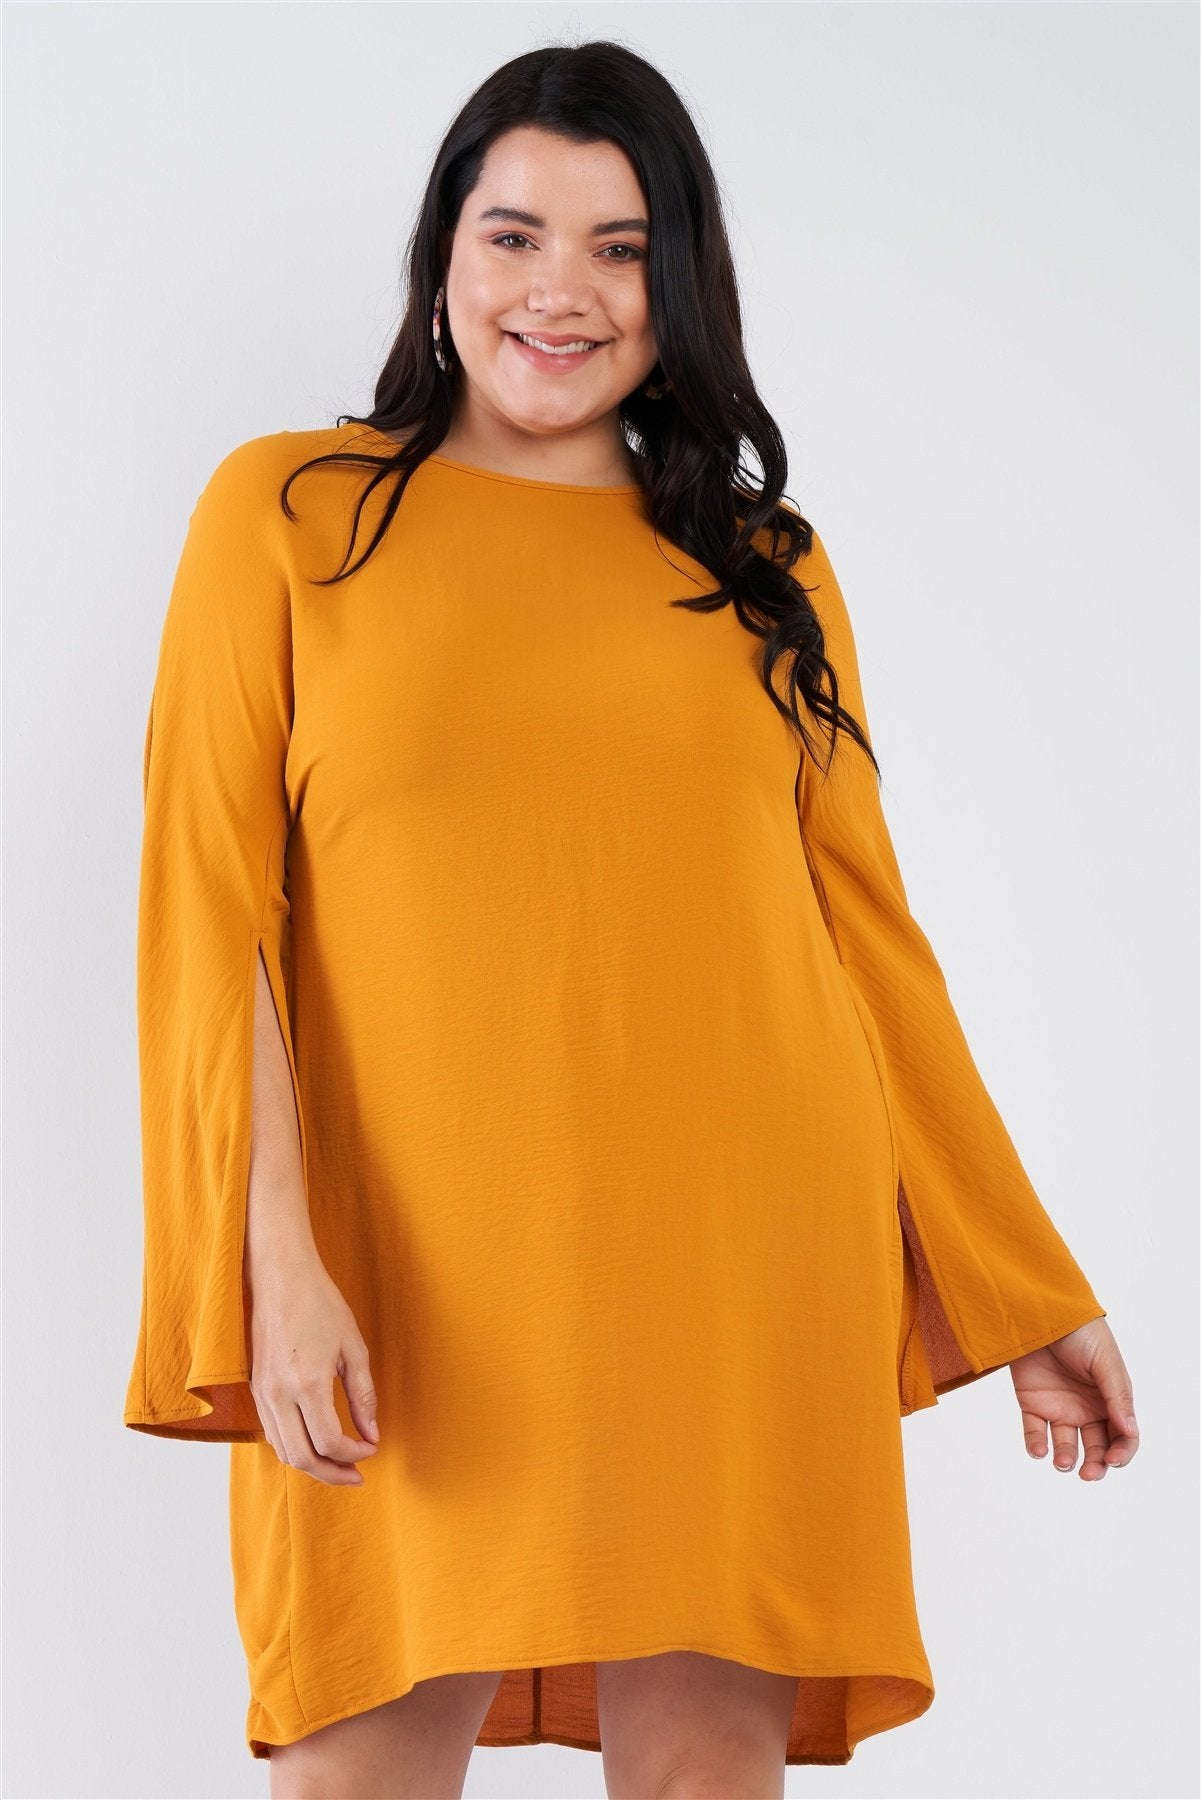 Plus Size Retro Chic Full Slit Sleeve Mini Dress - Absolute Fashion 2020